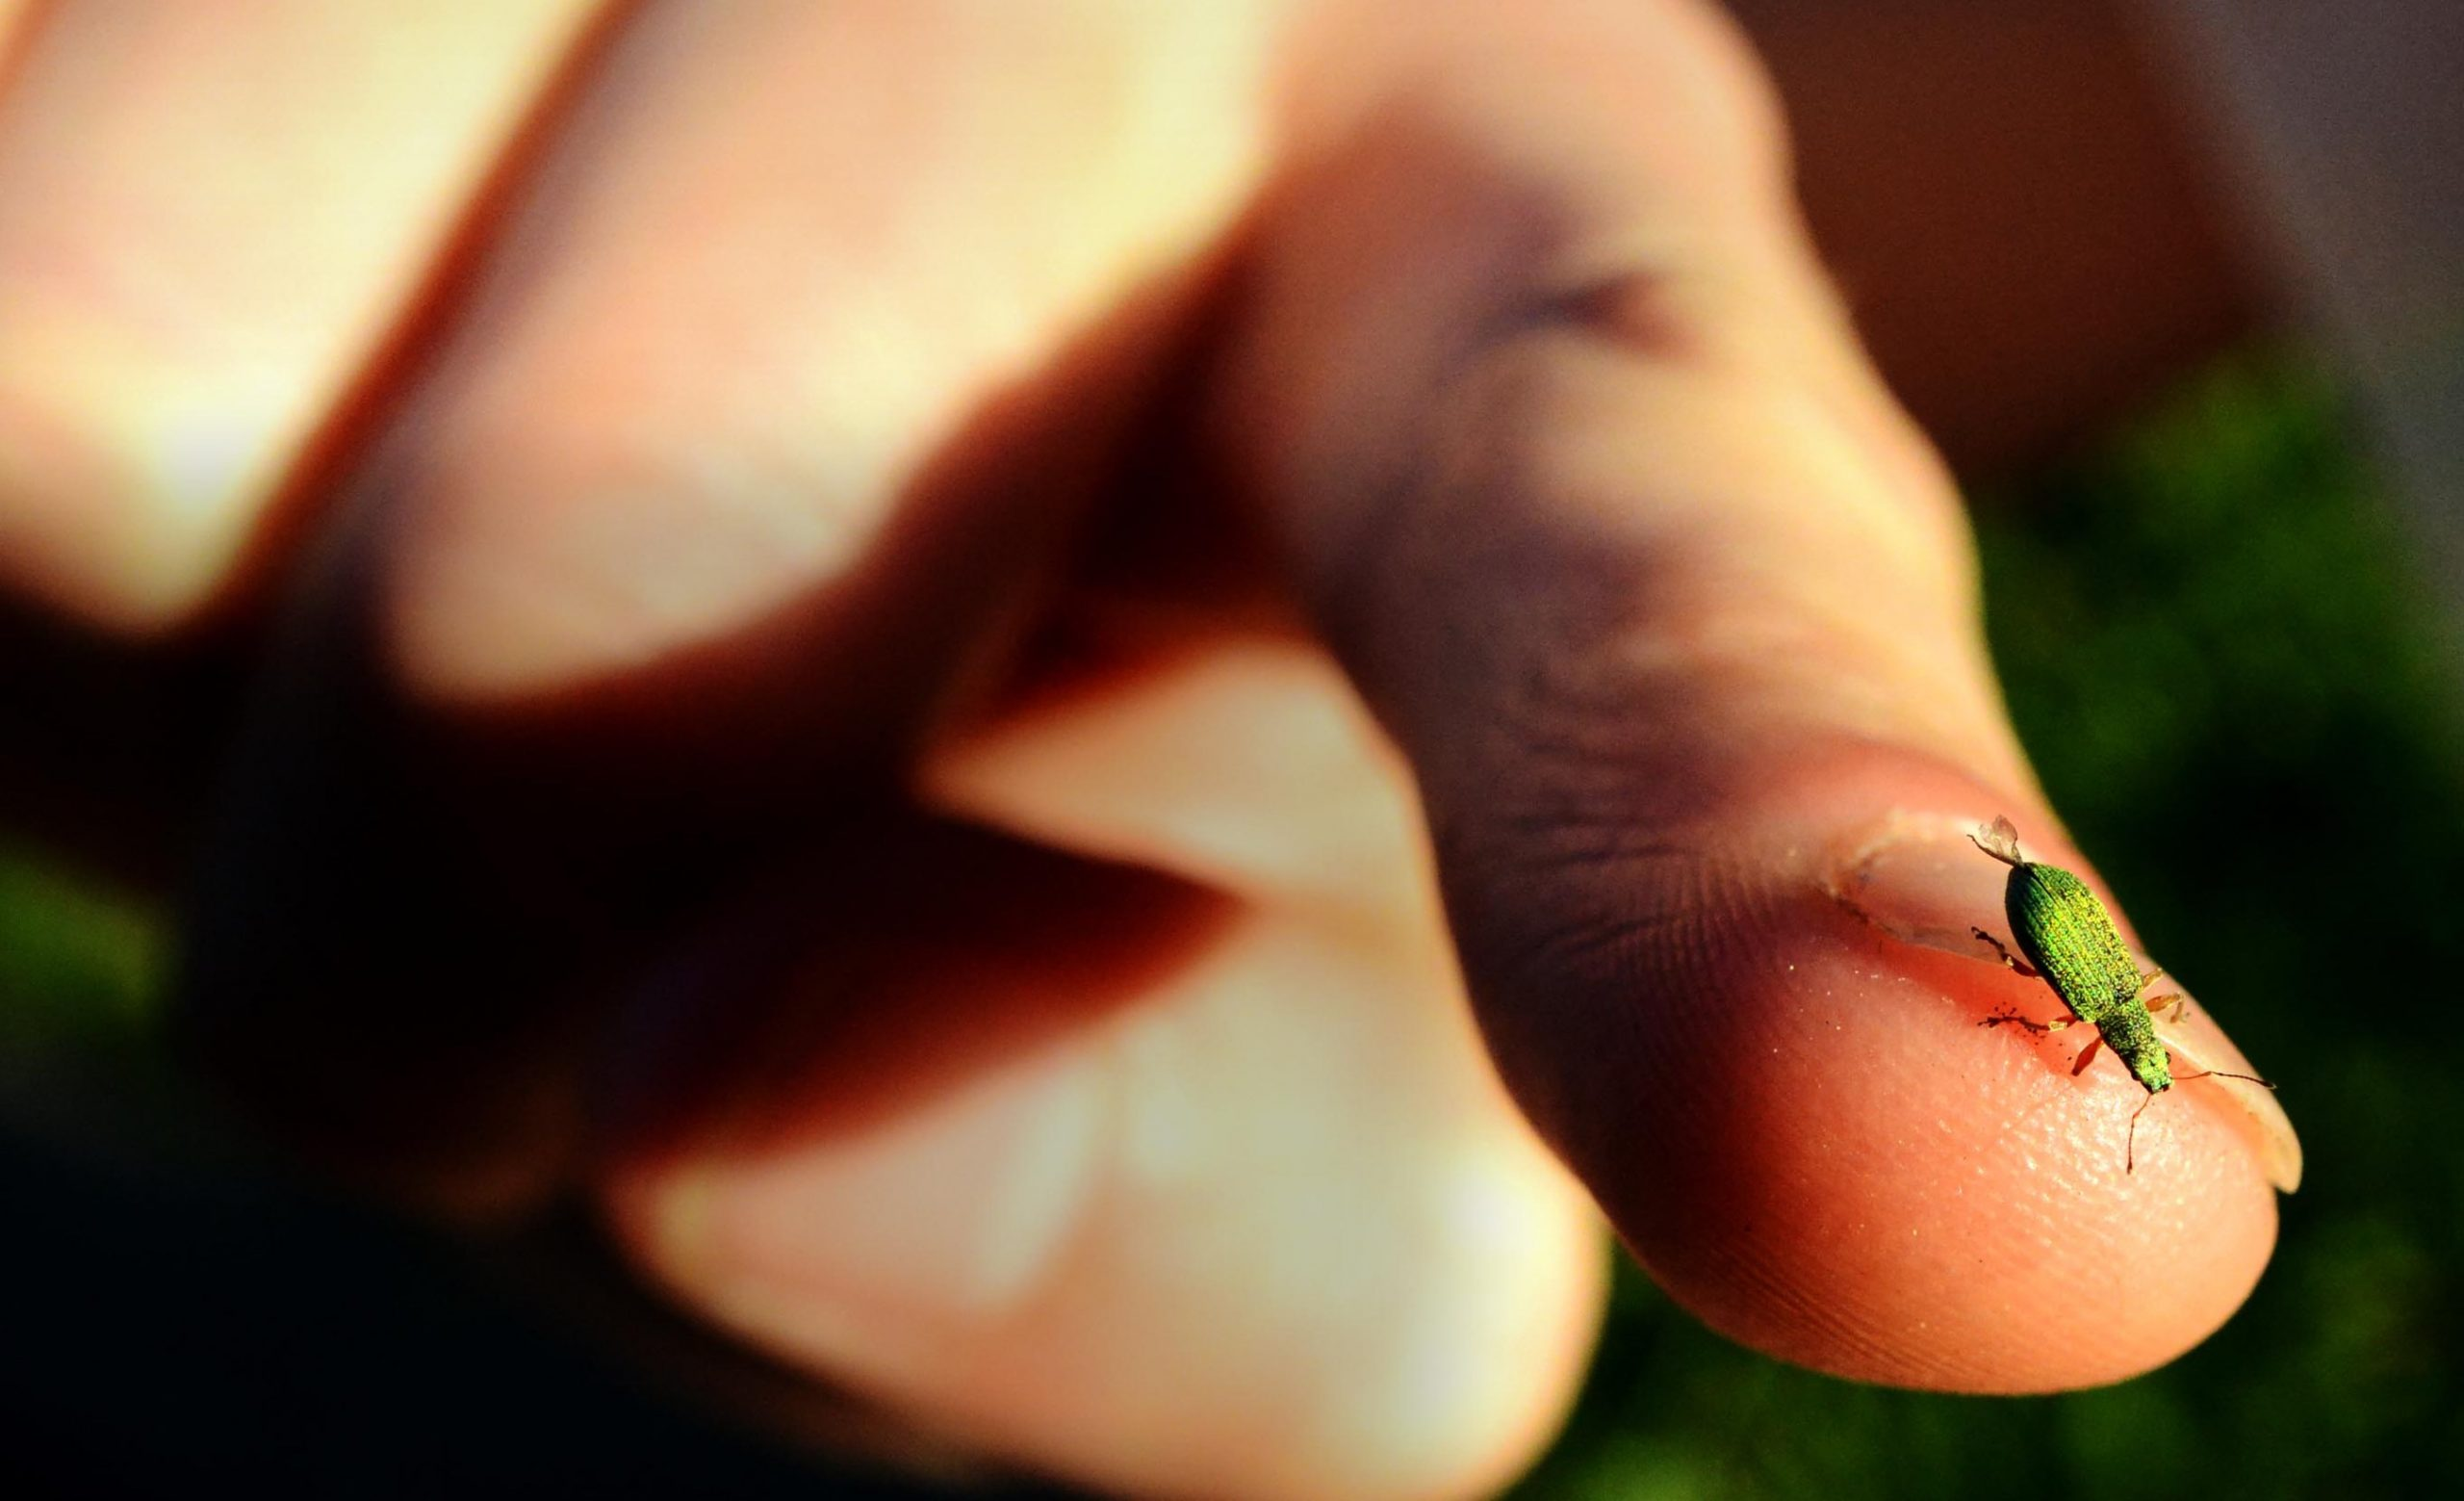 A small insect sits at the end of a human finger.